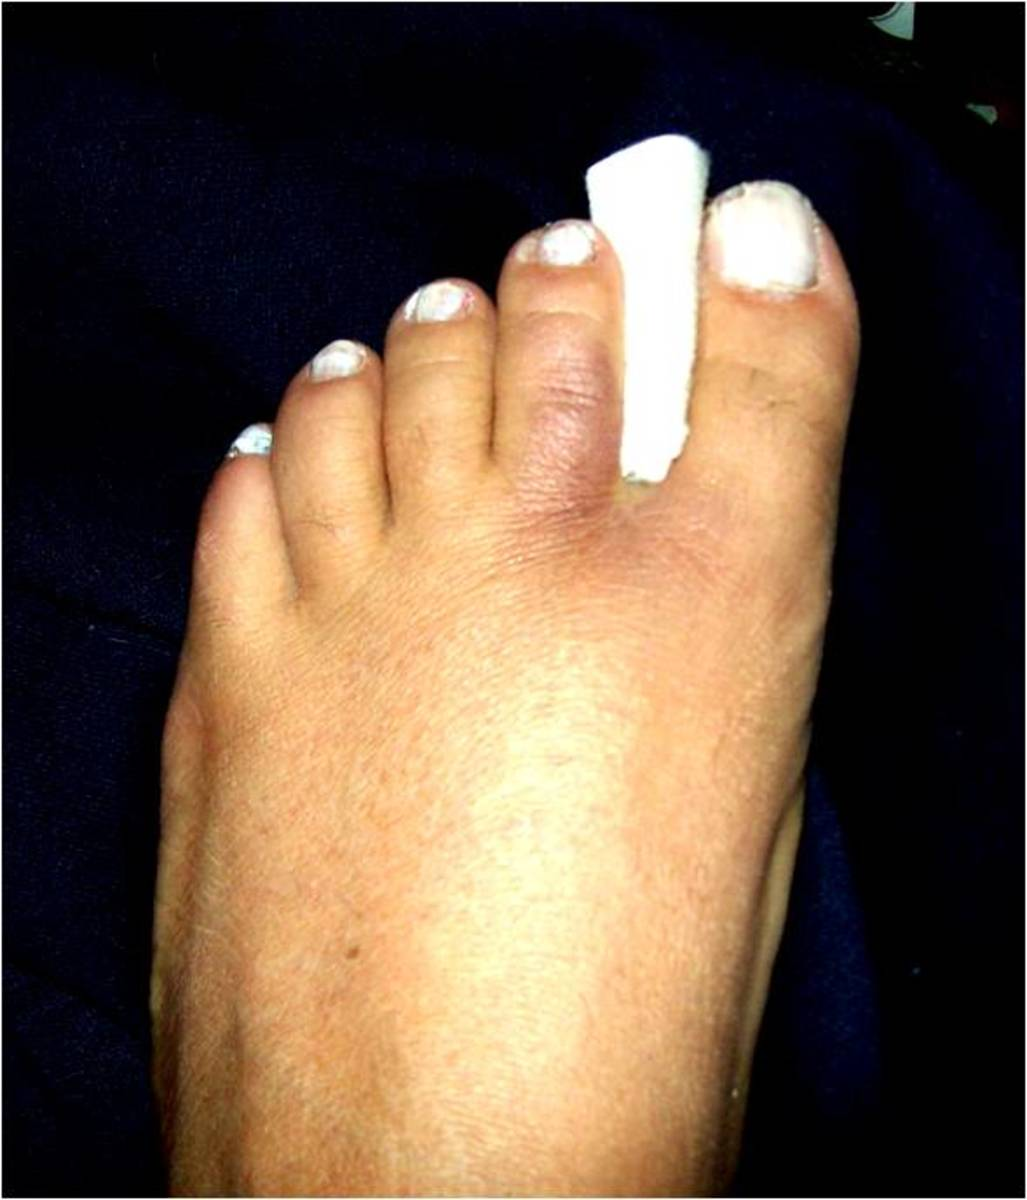 Place gauze or padding between the broken toe and the next larger toe